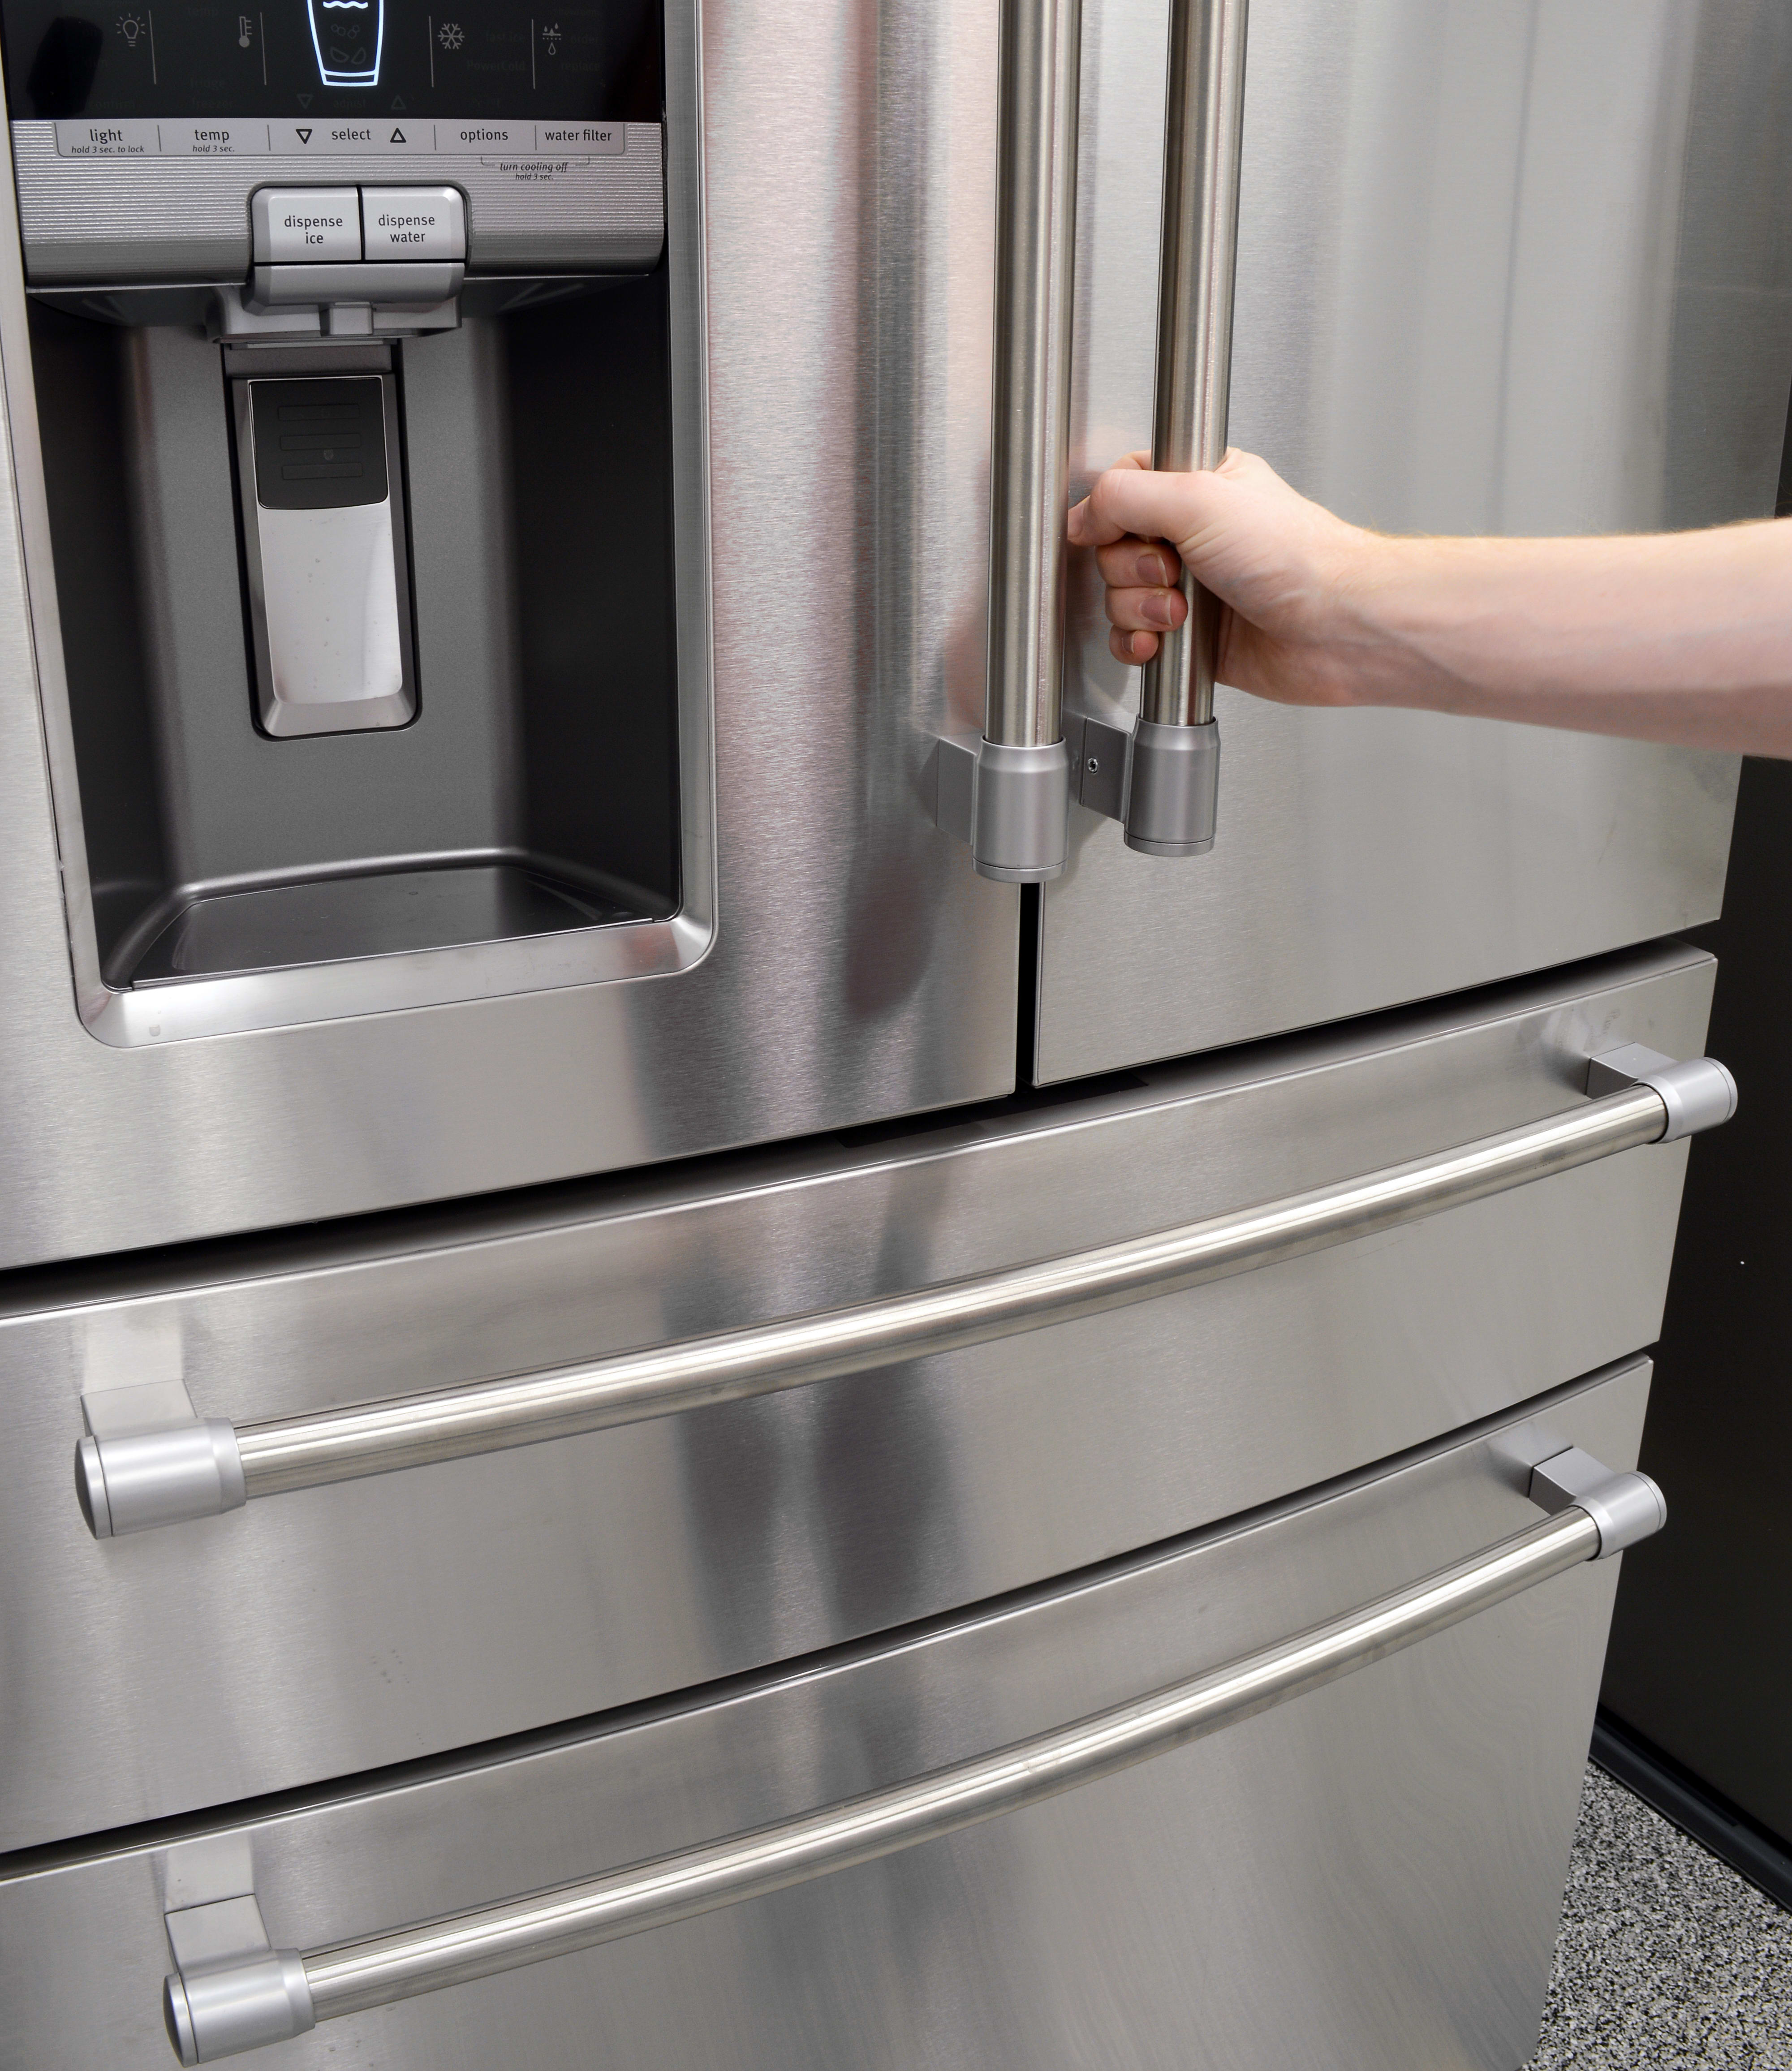 Staff writers in the office were divided about whether the plastic end caps on the handles were a plus or minus in terms of the overall design for the Maytag MFX2876DRM.